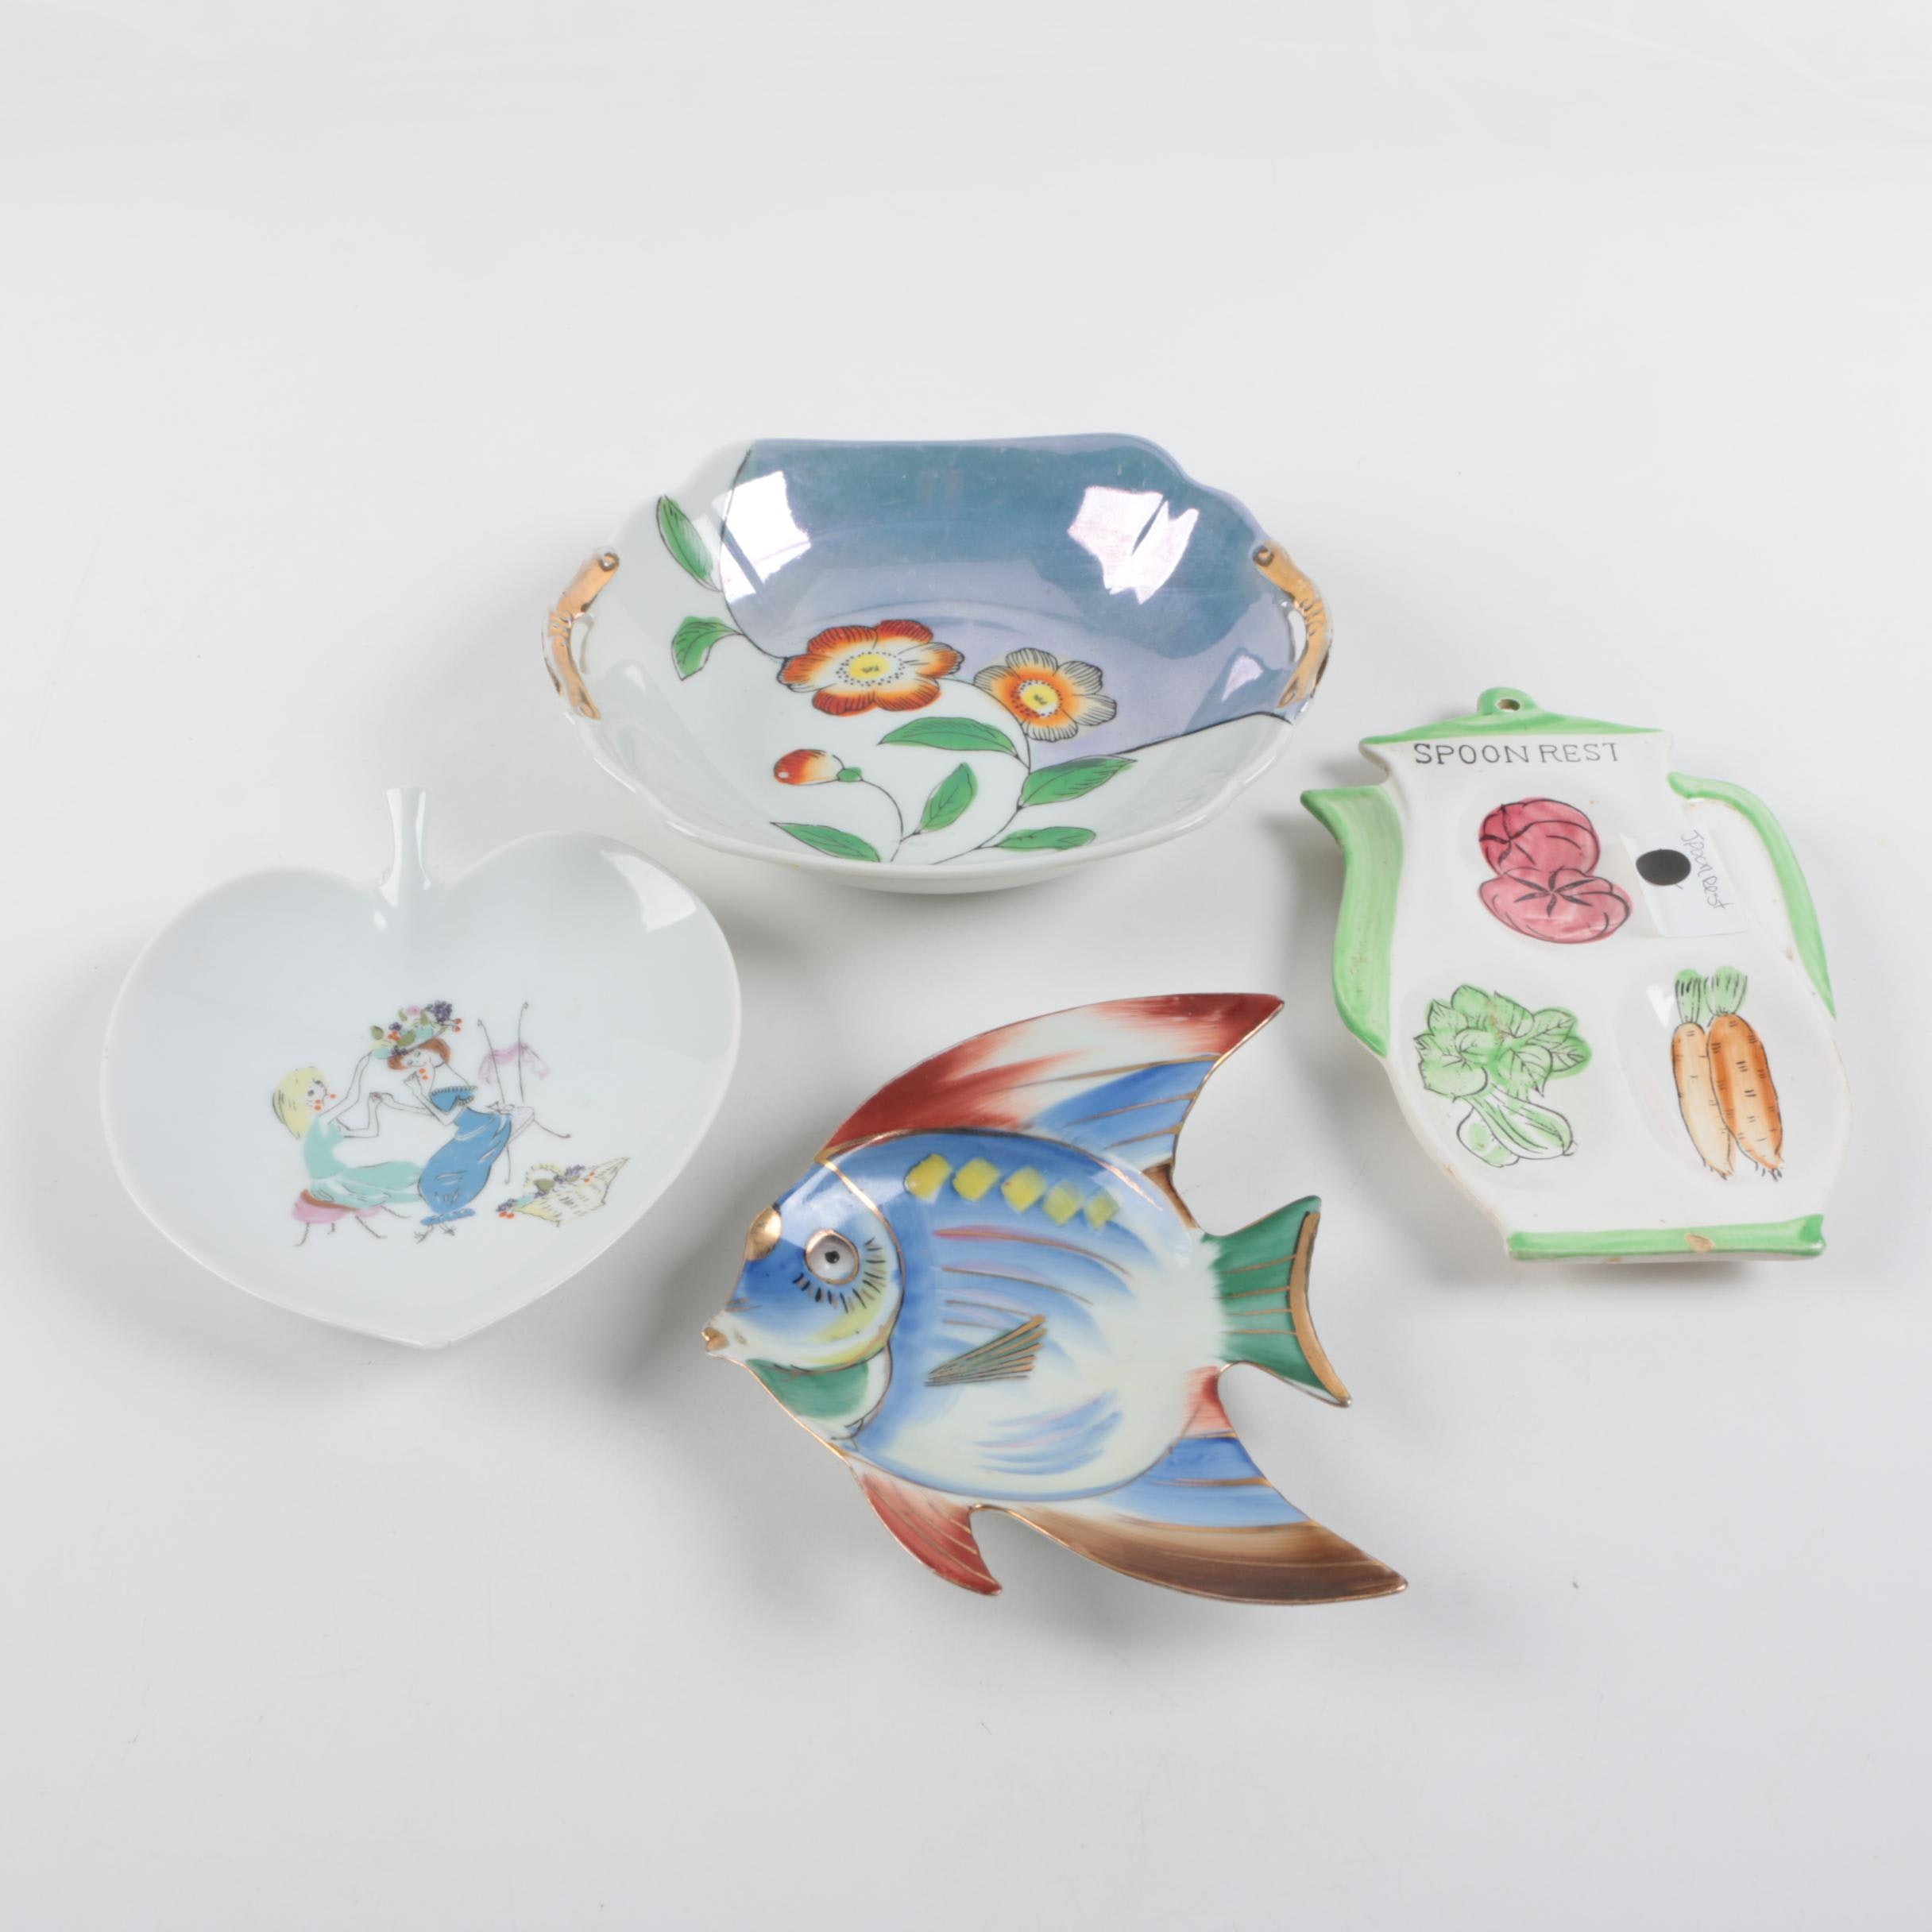 Hand-painted Porcelain Dishes